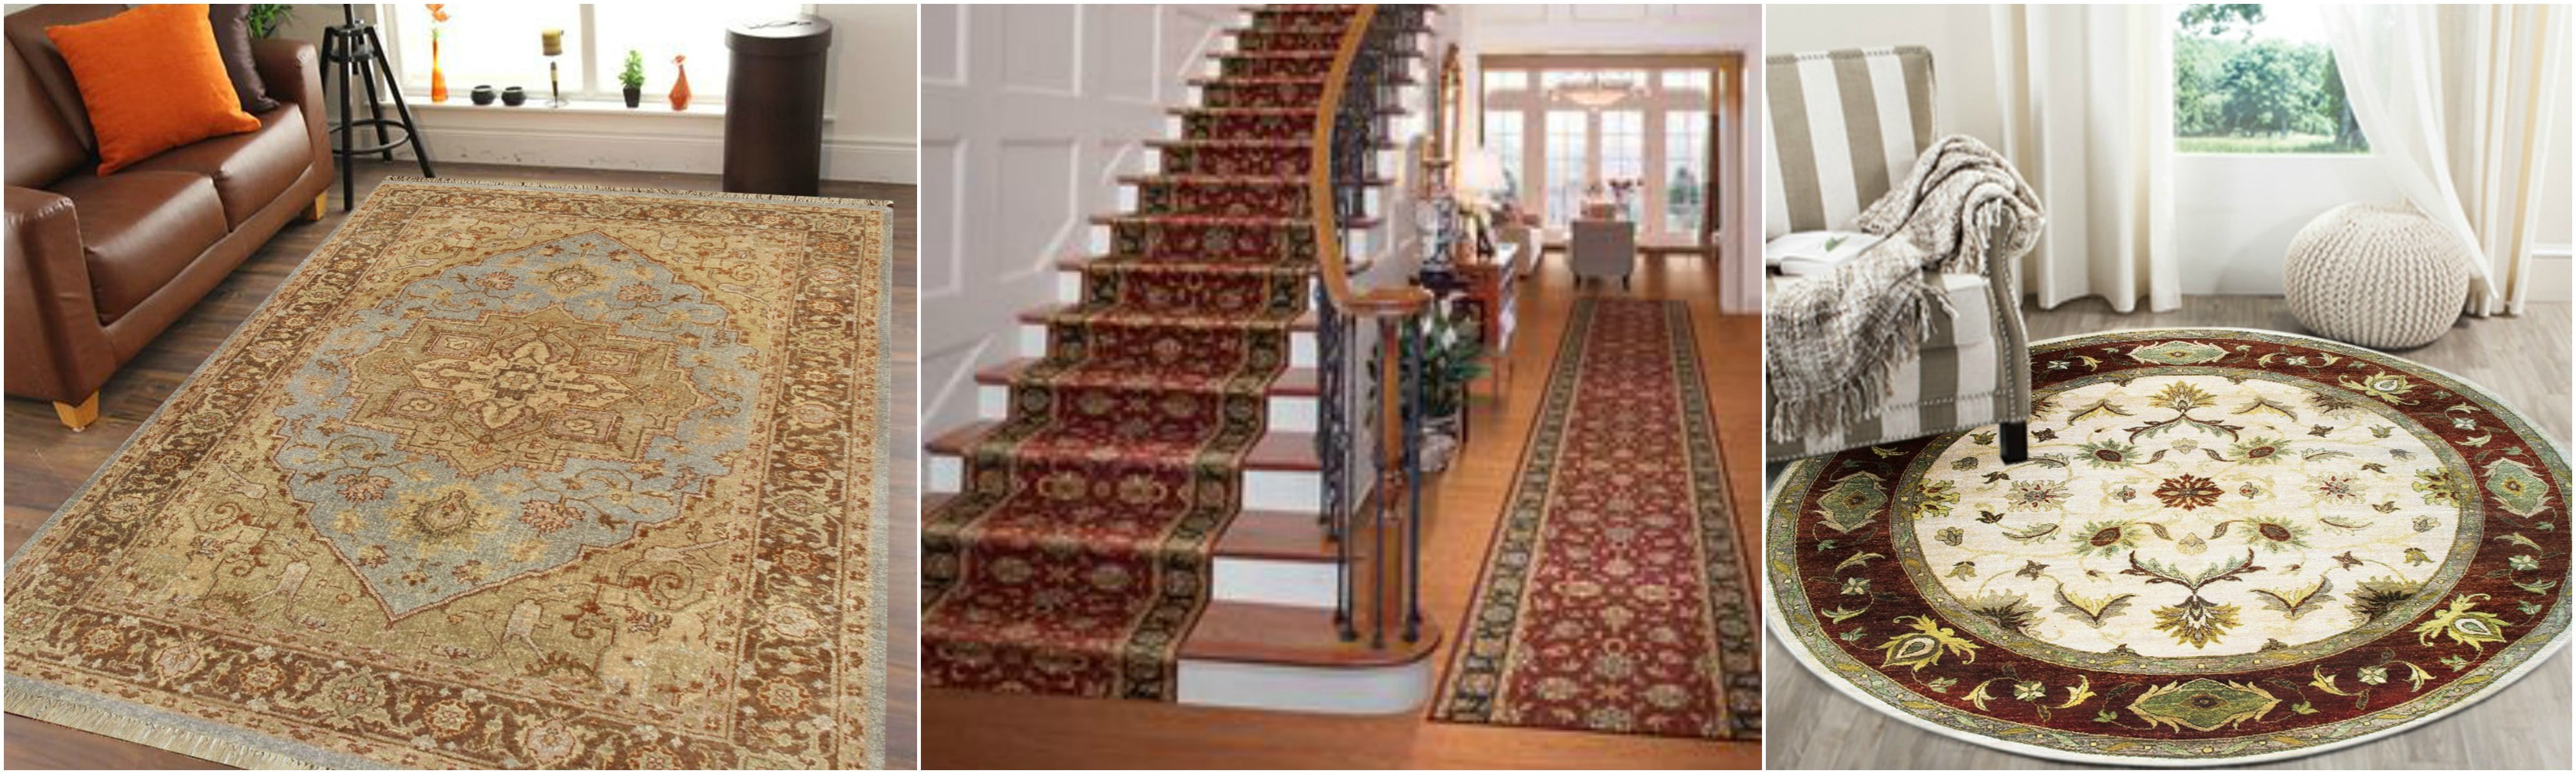 Best Offers On Persian Rugs Online